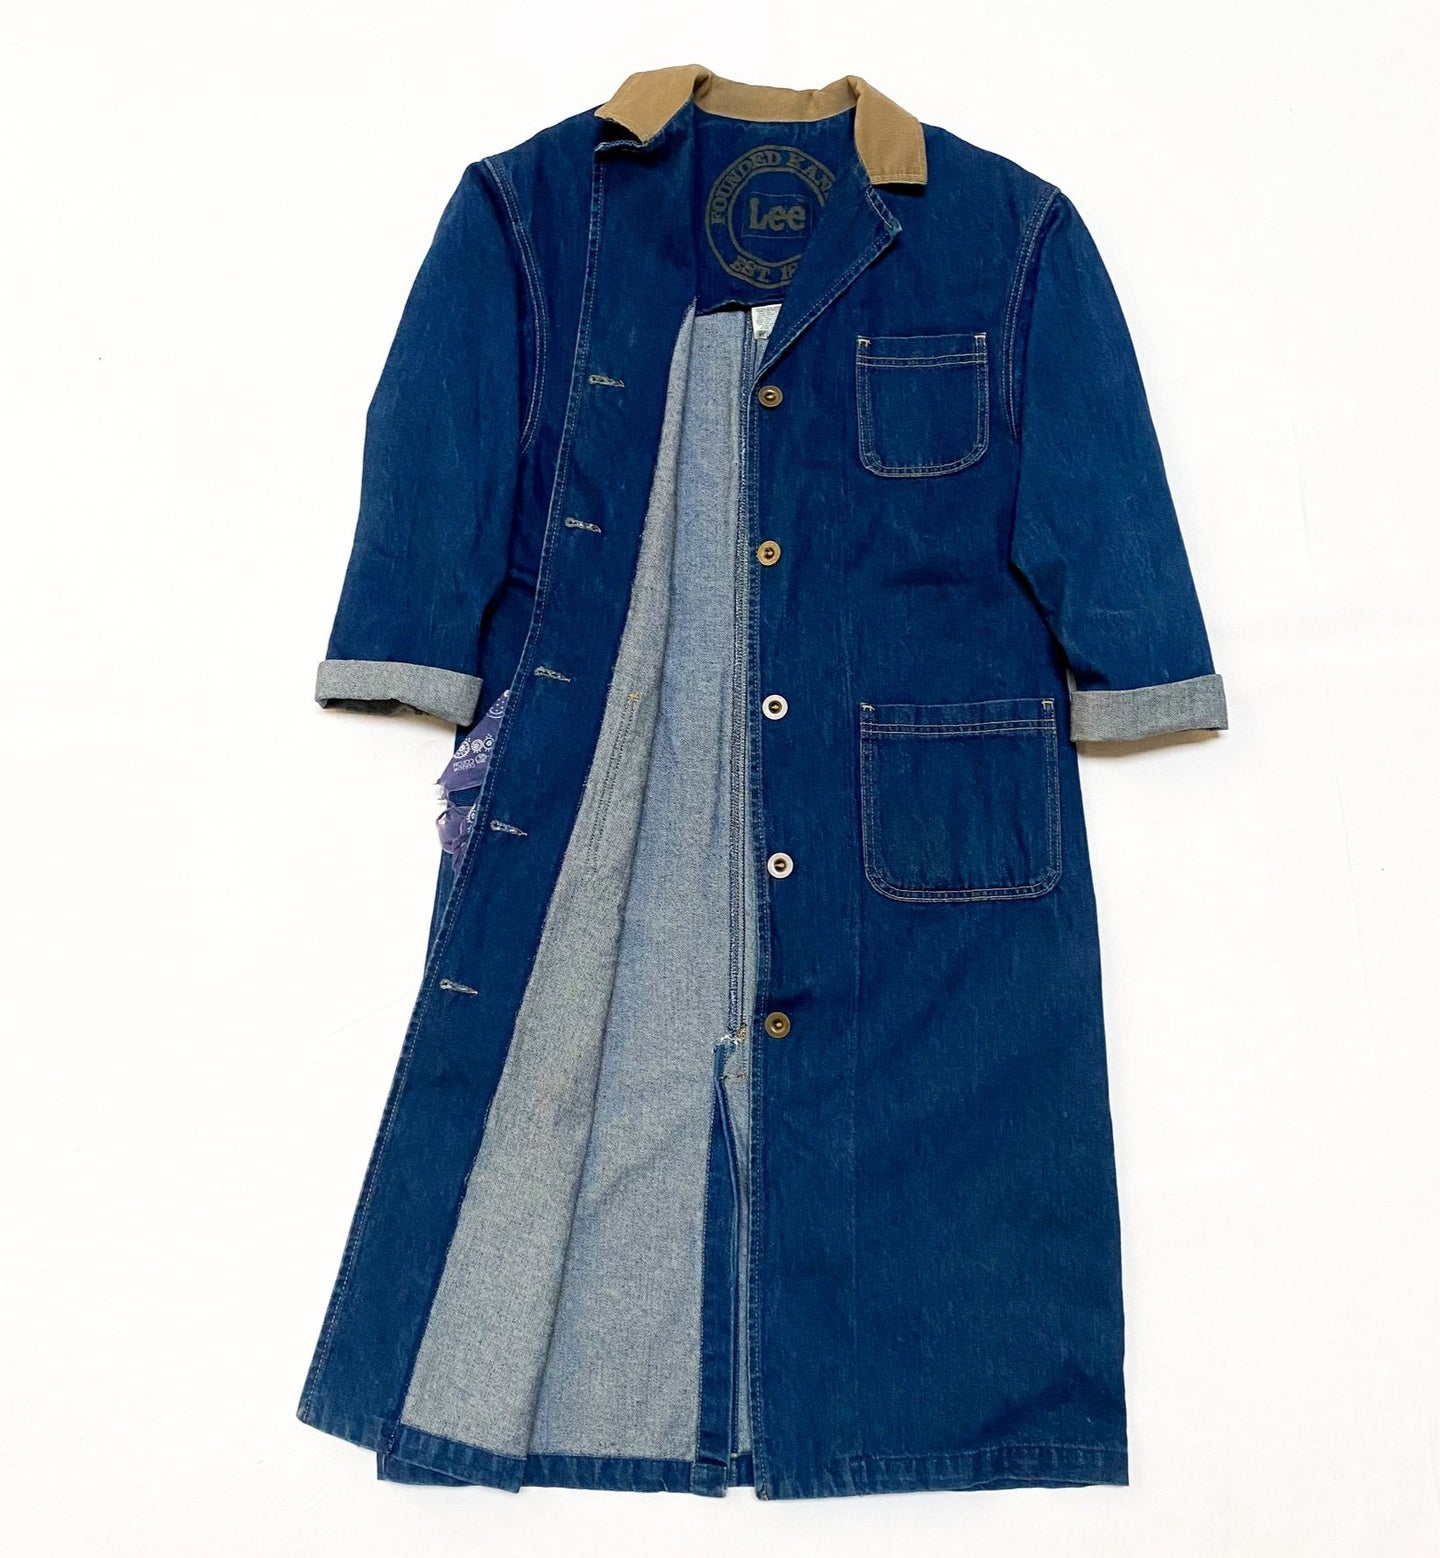 Vintage Lee Denim Duster